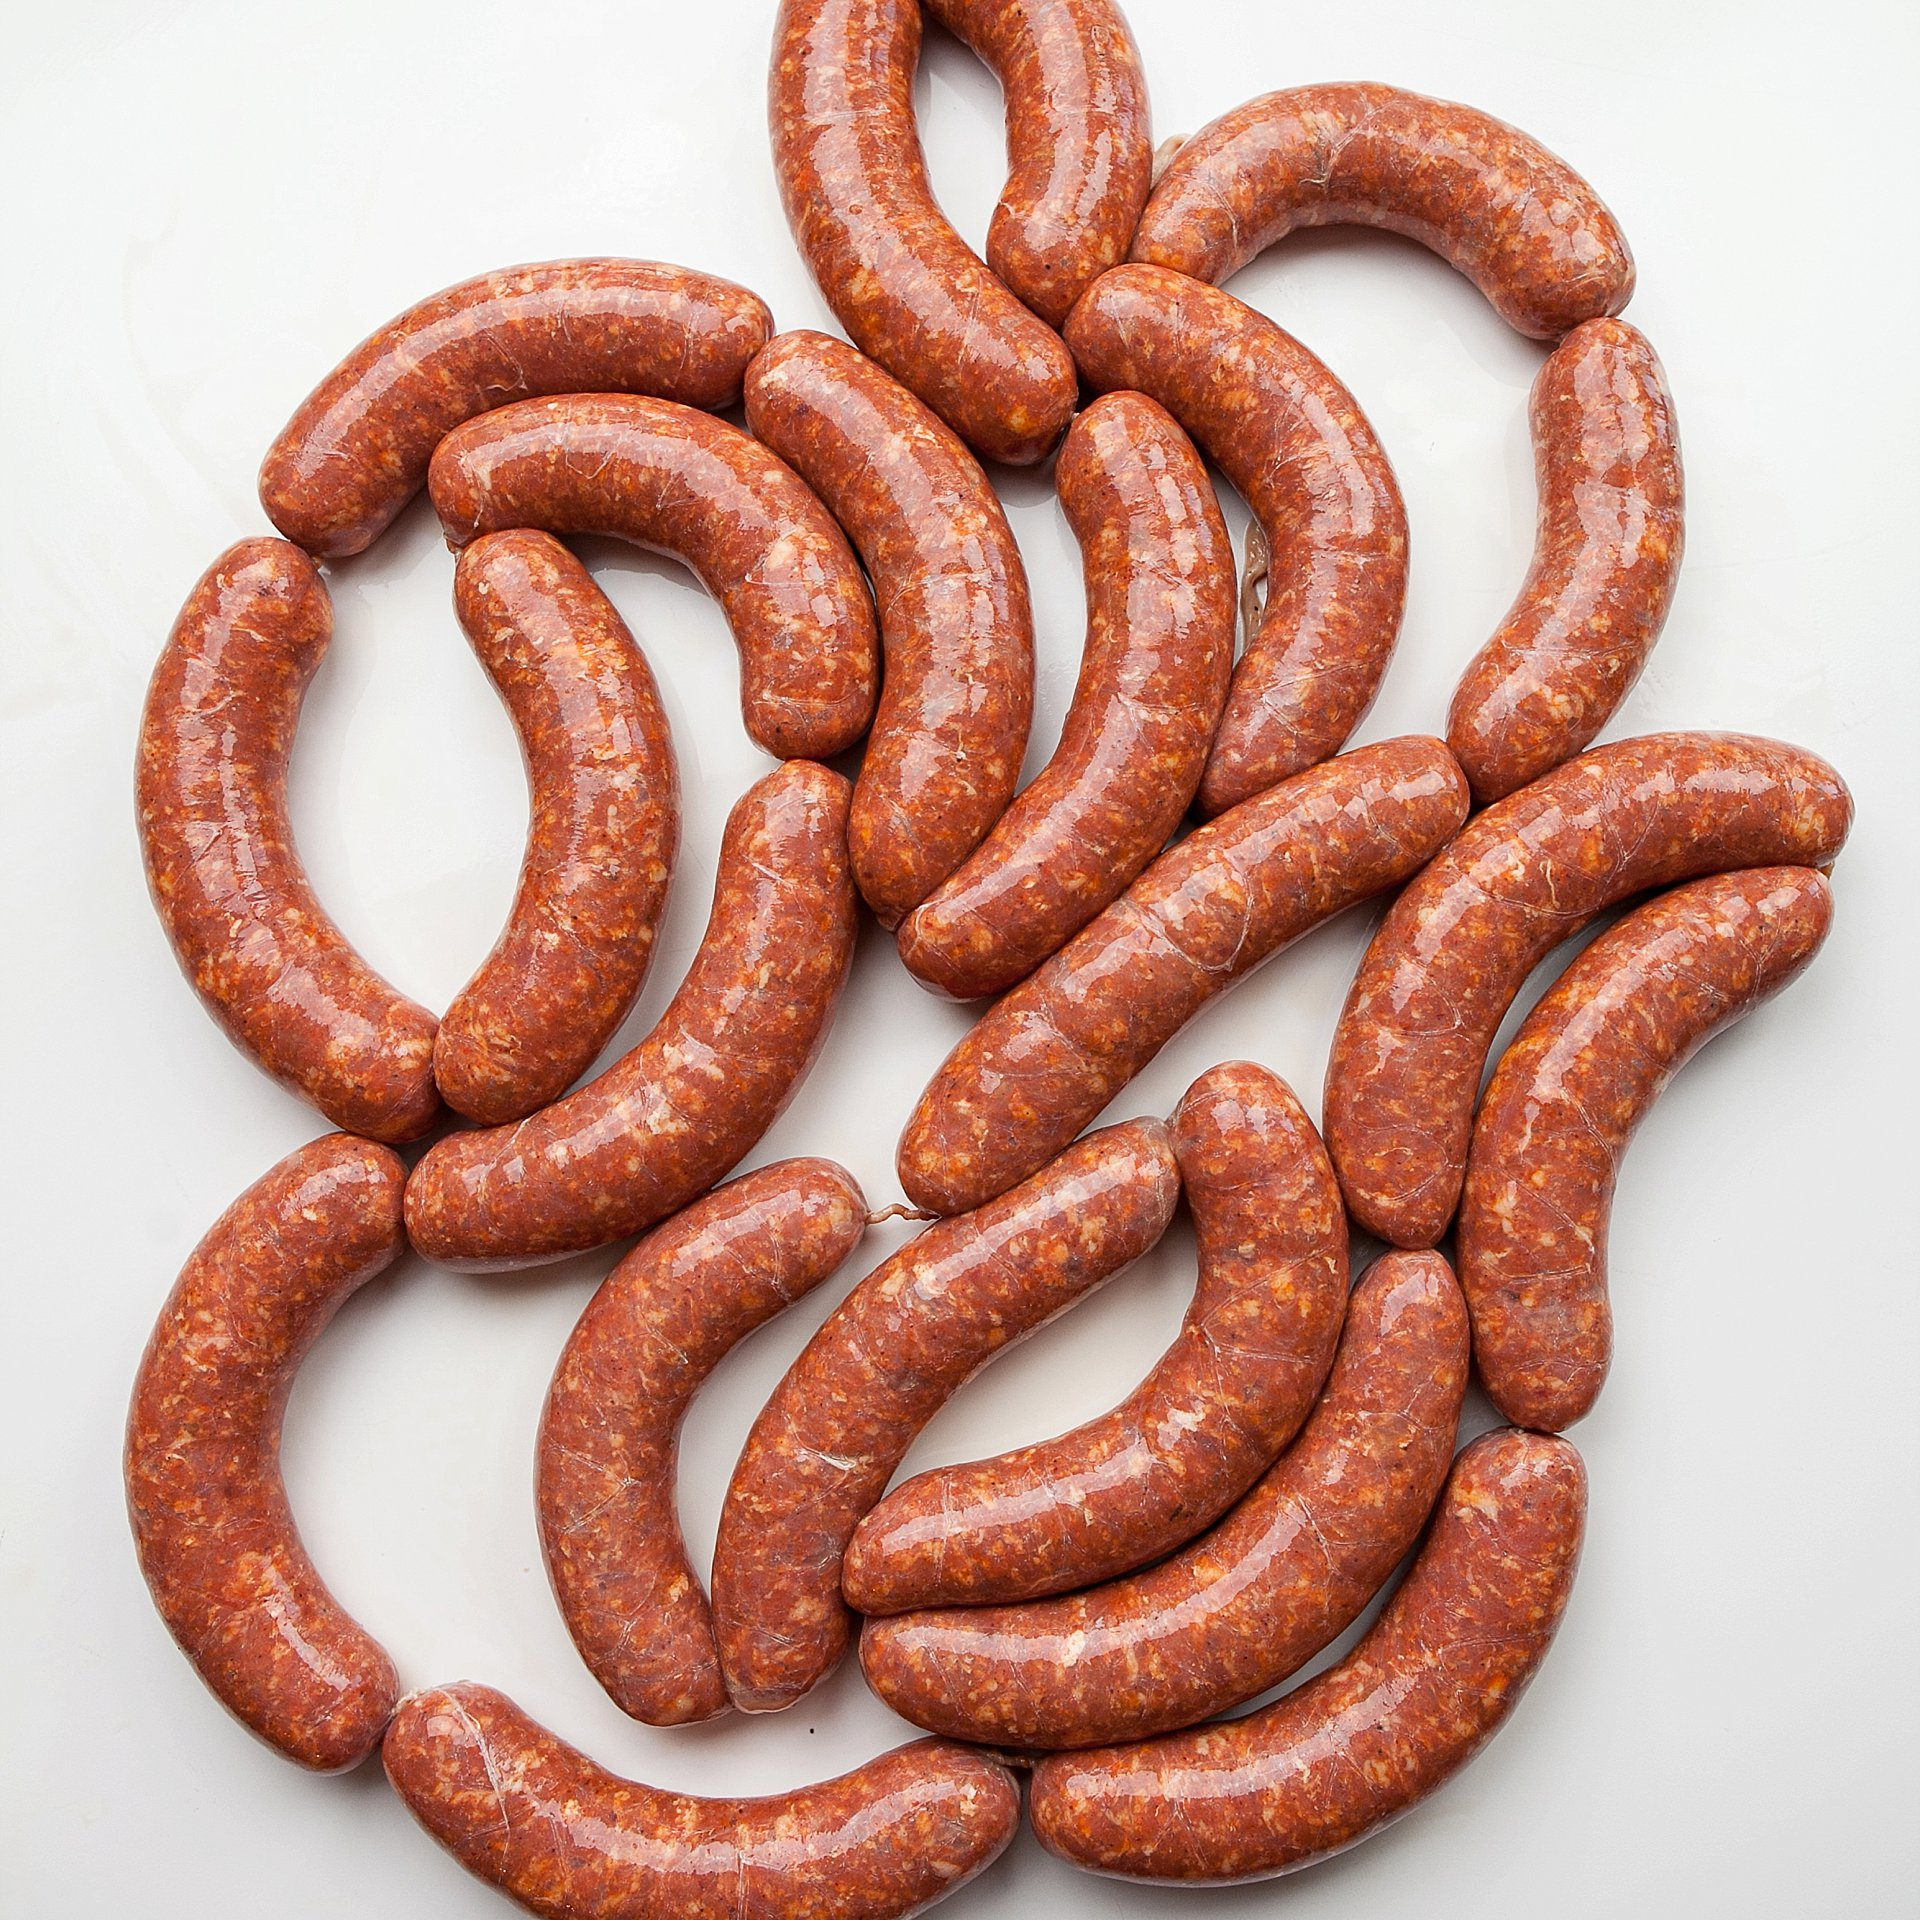 Chorizo Recipe - How to Make Pork Sausage